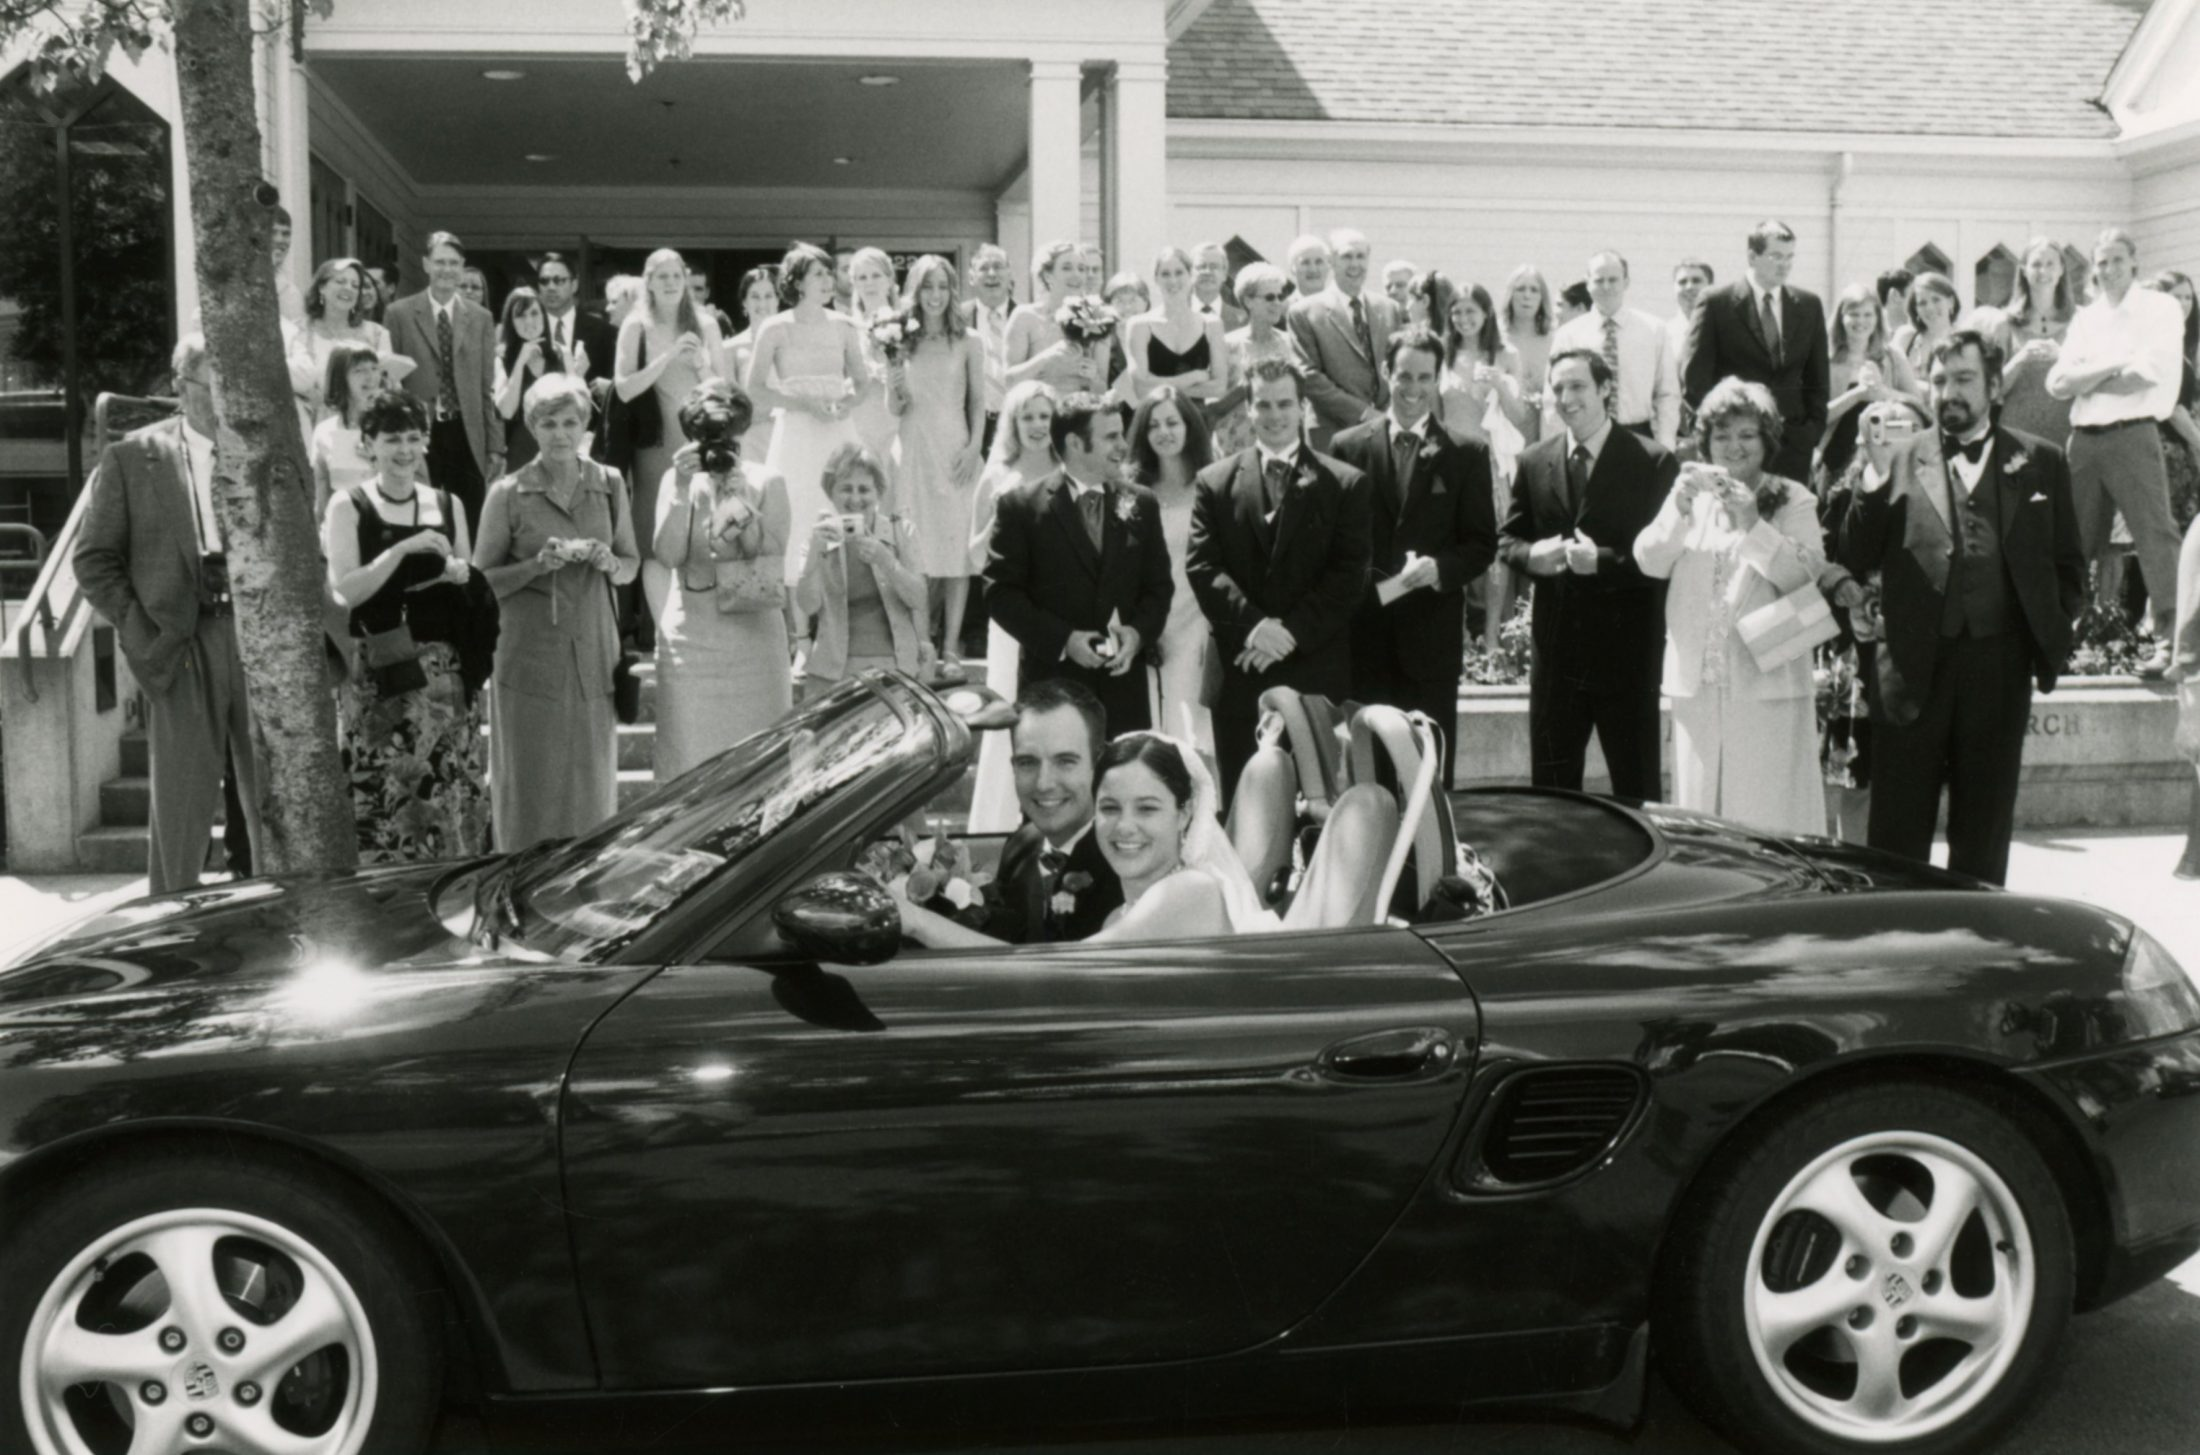 Shawn and Marjorie Brimley in car after wedding surrounded by family and friends